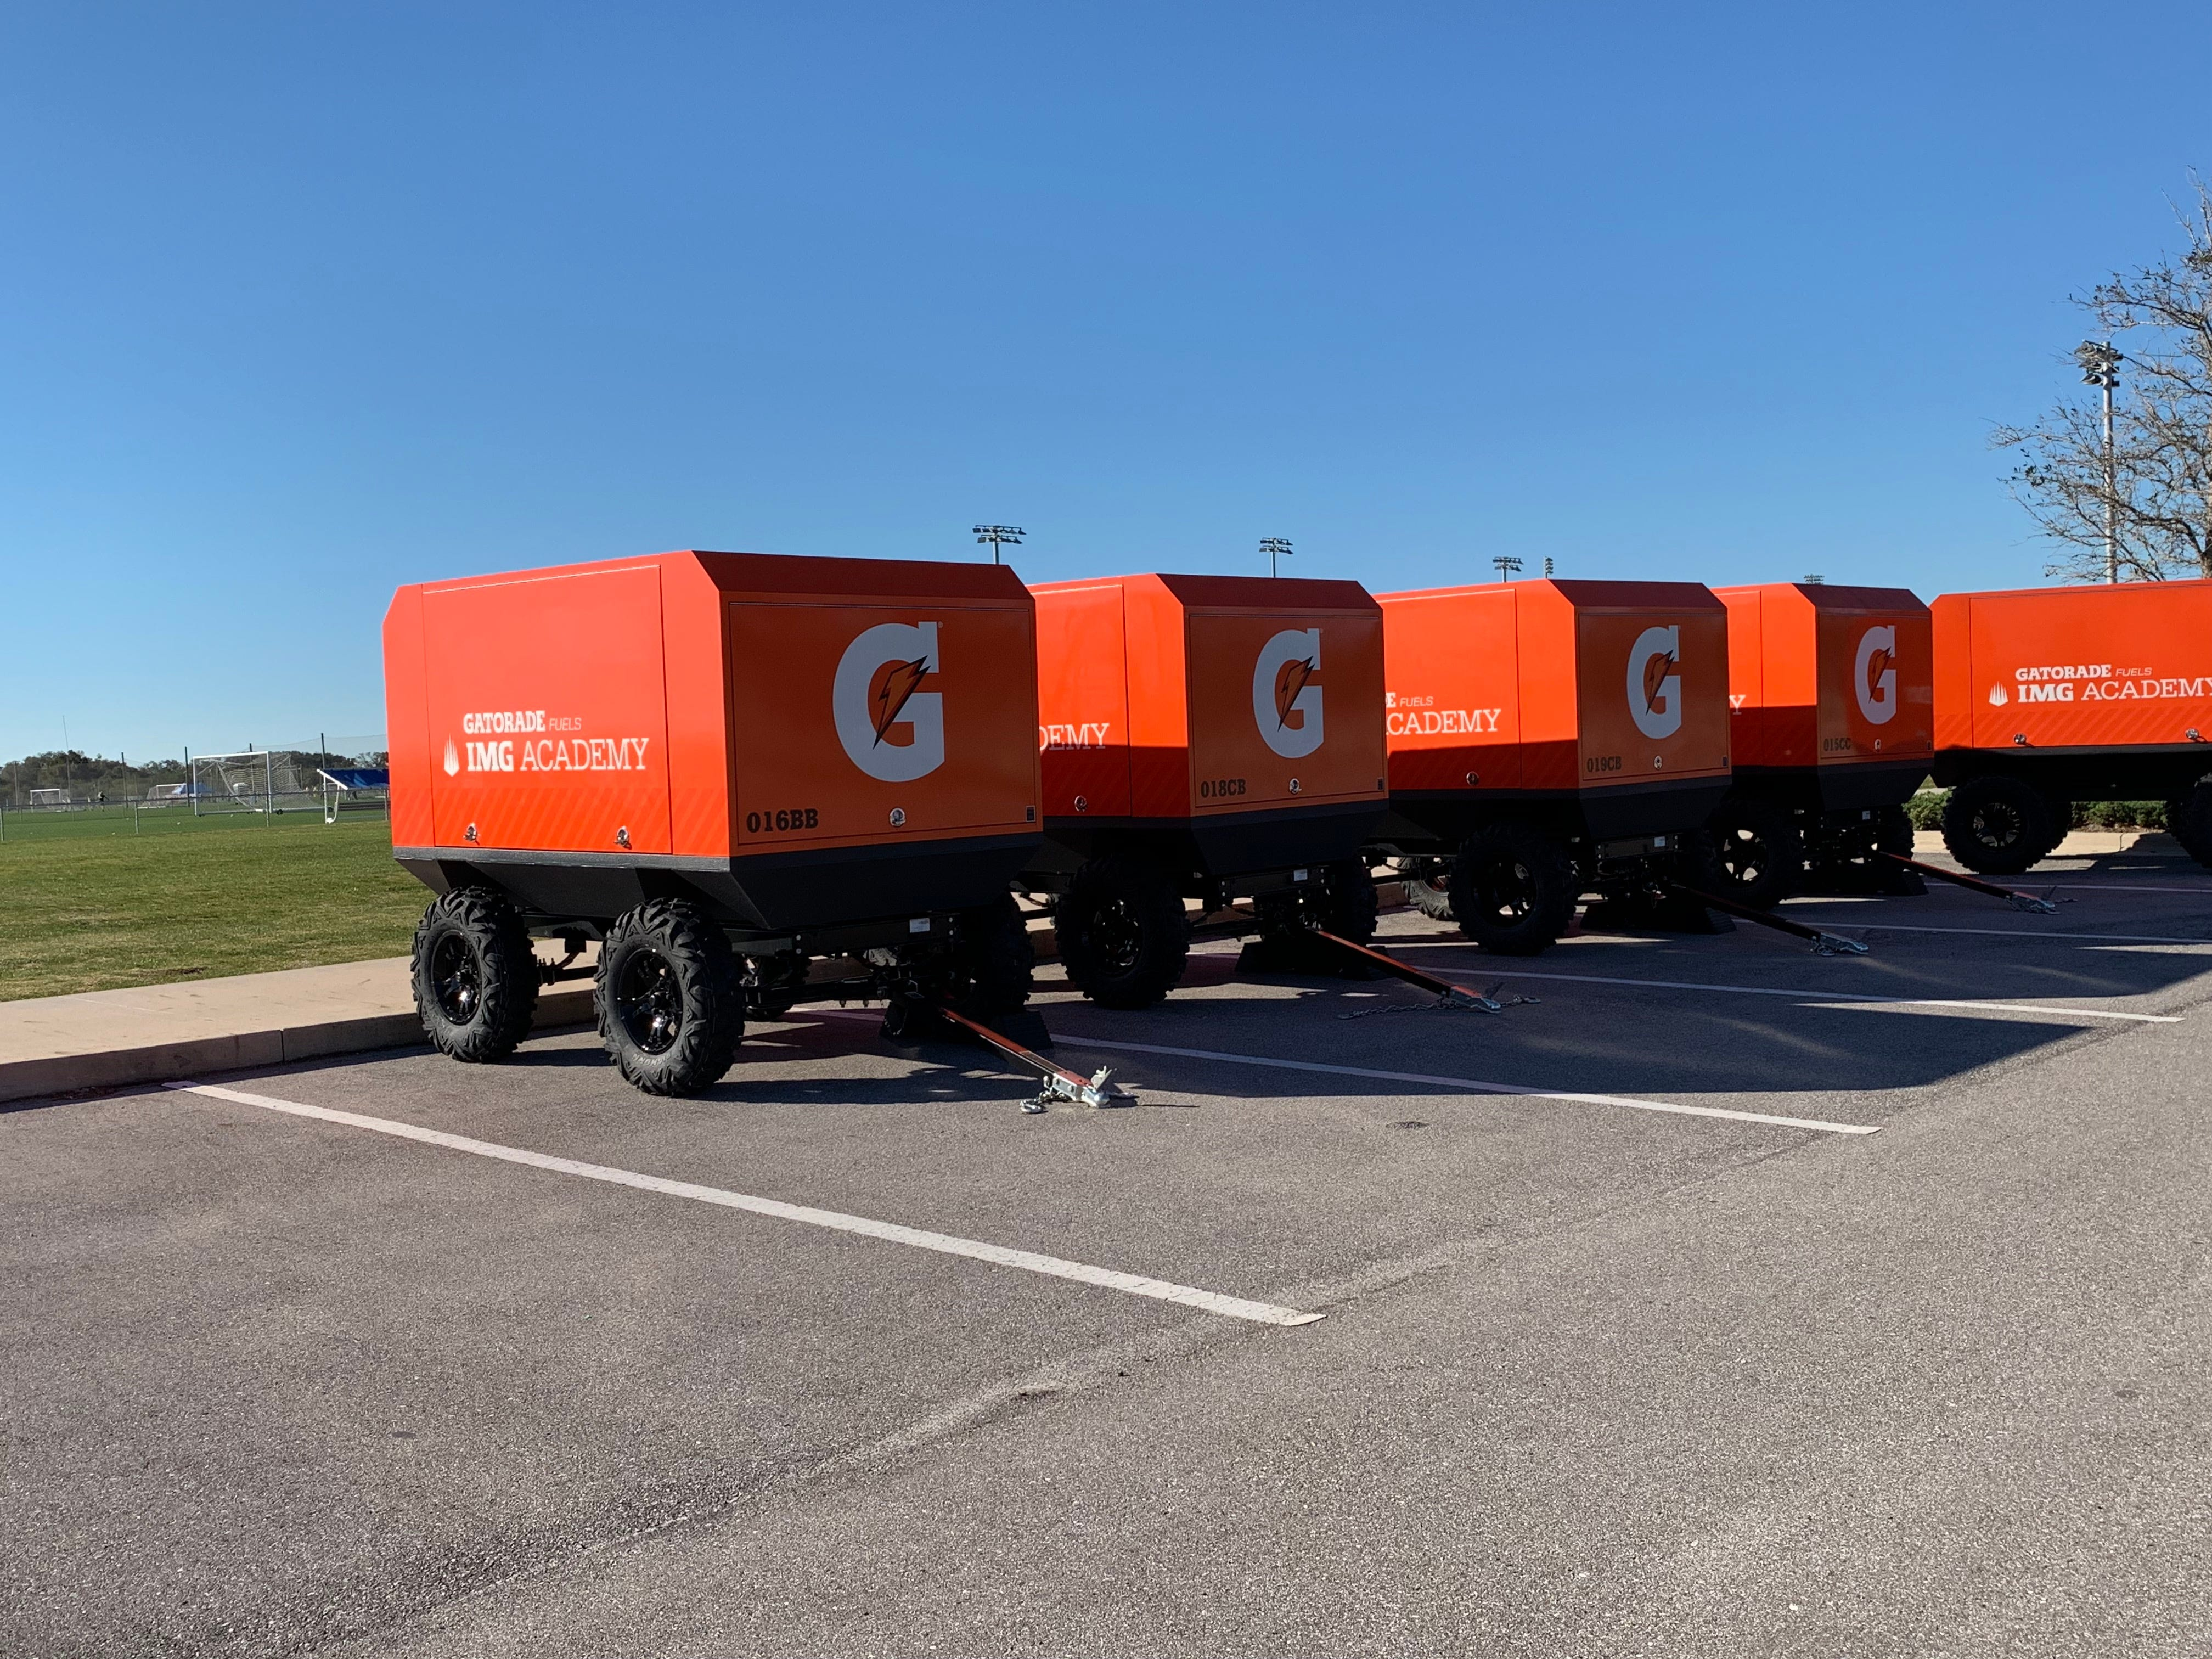 Gatorade-branded trolleys and containers are a common sight on the IMG Academy campus